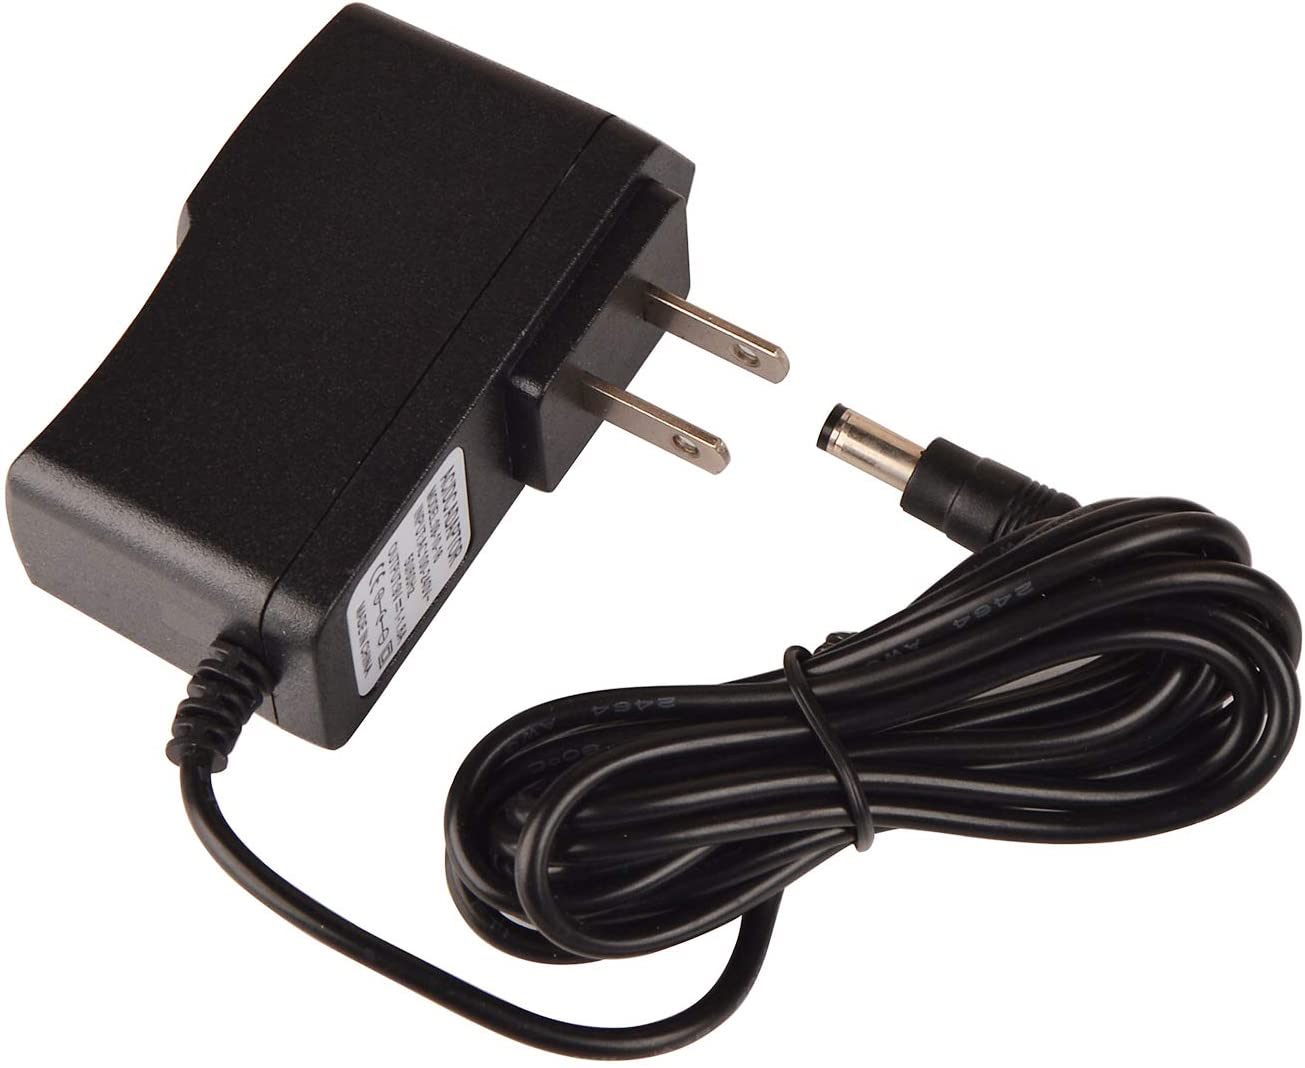 MyVolts 9V Power Supply Adaptor Compatible with Brother PT-8000 Label Printer US Plug